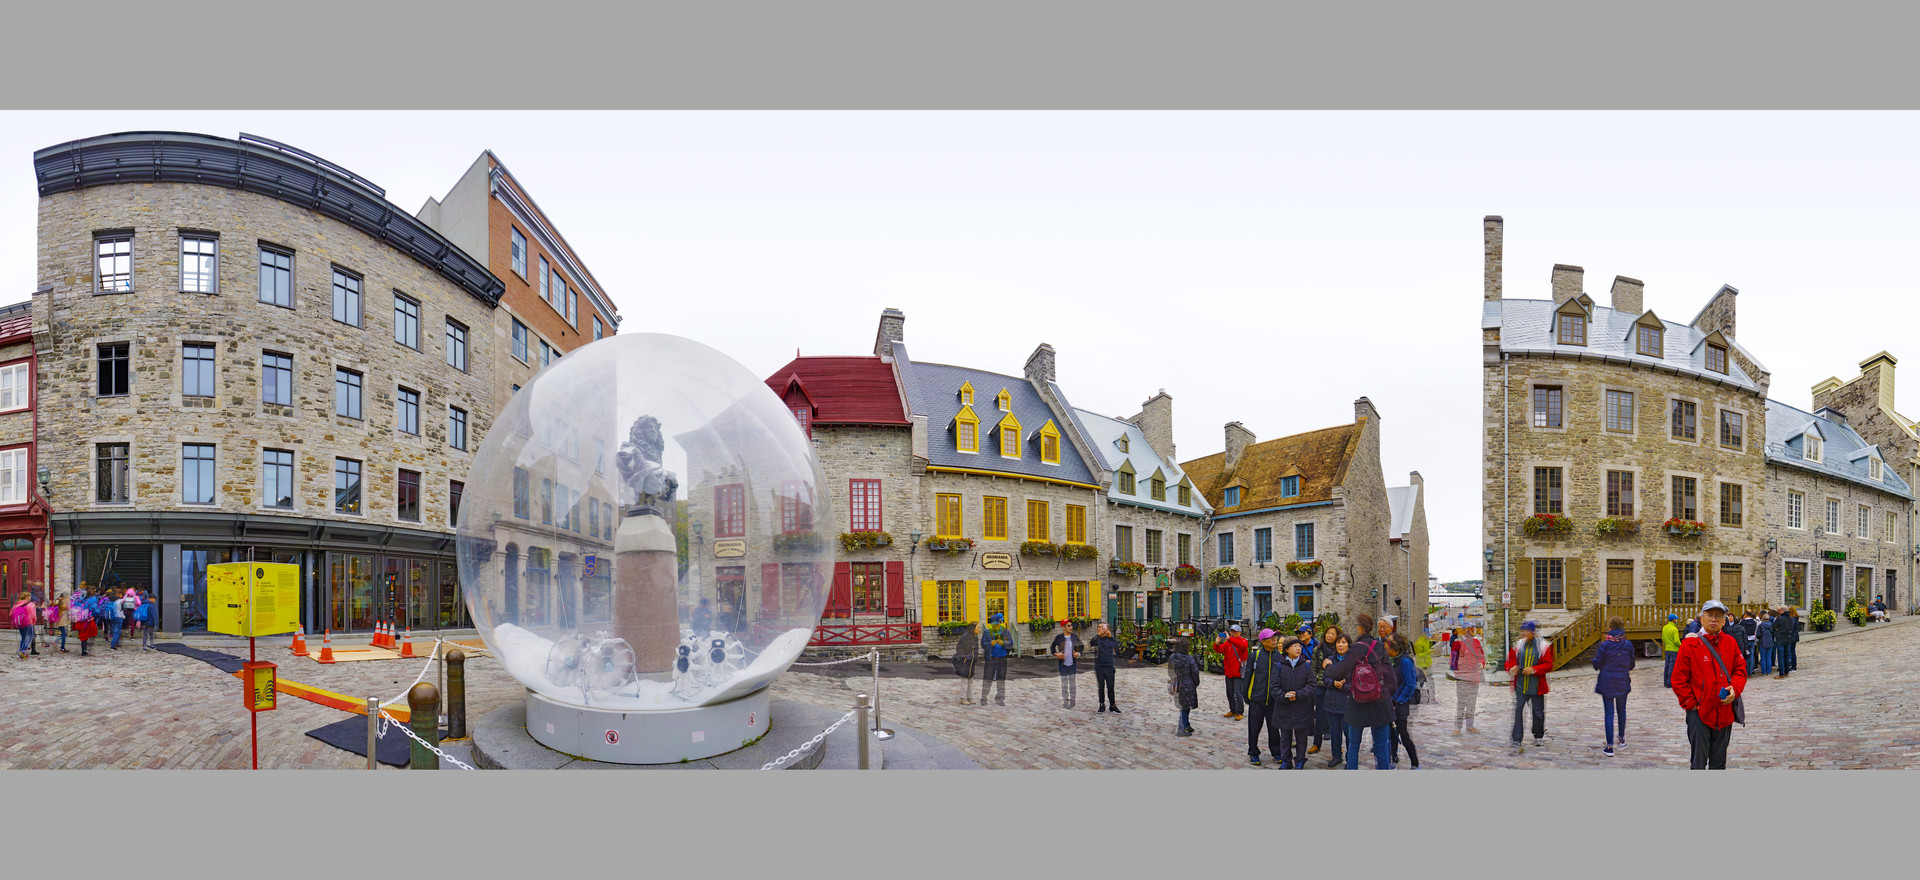 Snow Globe, Place Royal, Quebec